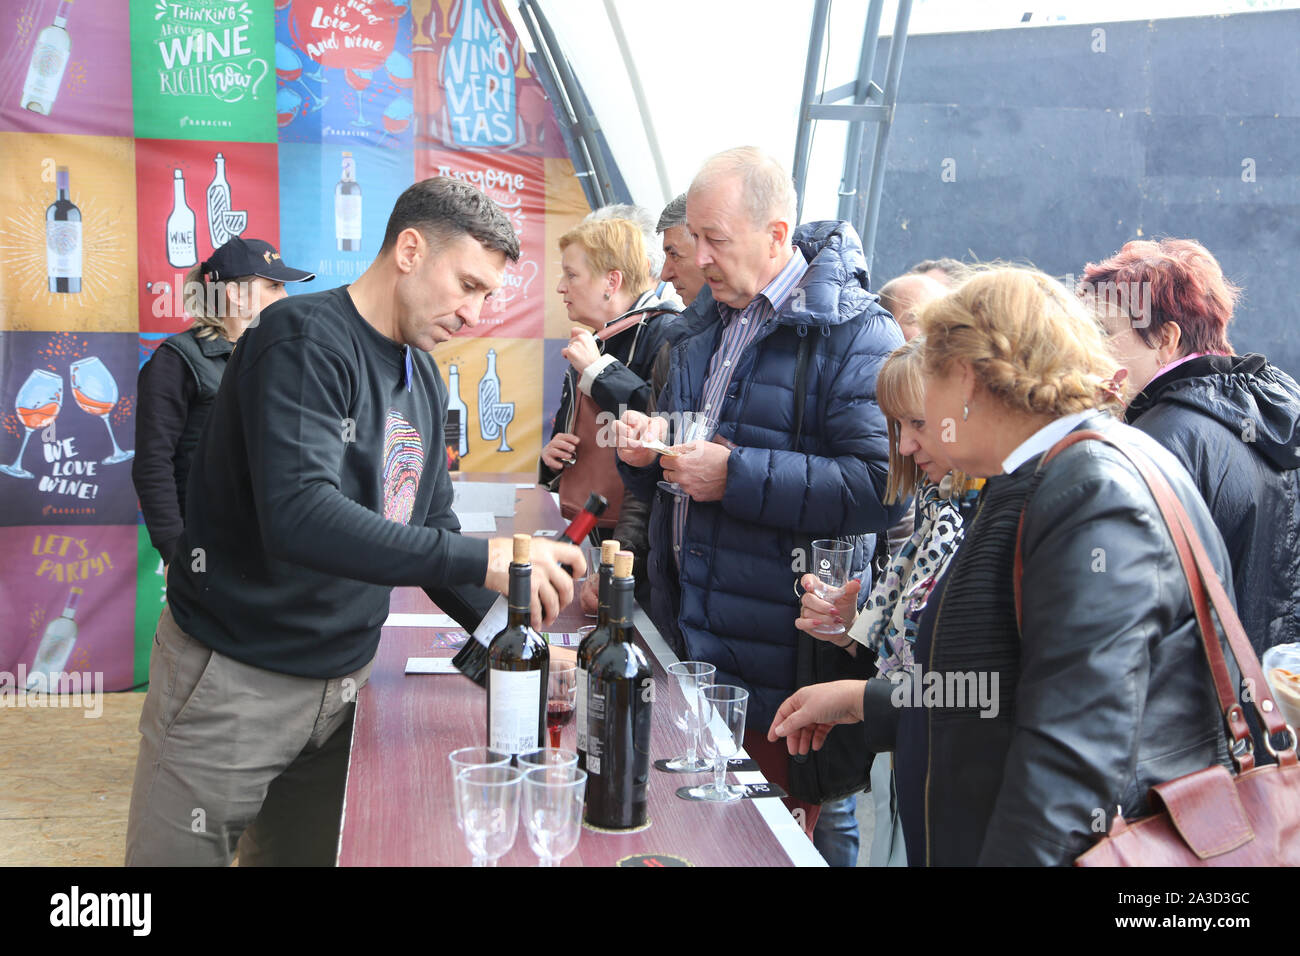 Chisinau, Moldova. 5th Oct, 2019. People take part in an event during the 18th edition of the National Wine Day in Chisinau, Moldova, Oct. 5, 2019. Moldova's two-day National Wine Day, aiming to promote wine production and exports, ended here on Sunday. Credit: Chen Jin/Xinhua/Alamy Live News Stock Photo